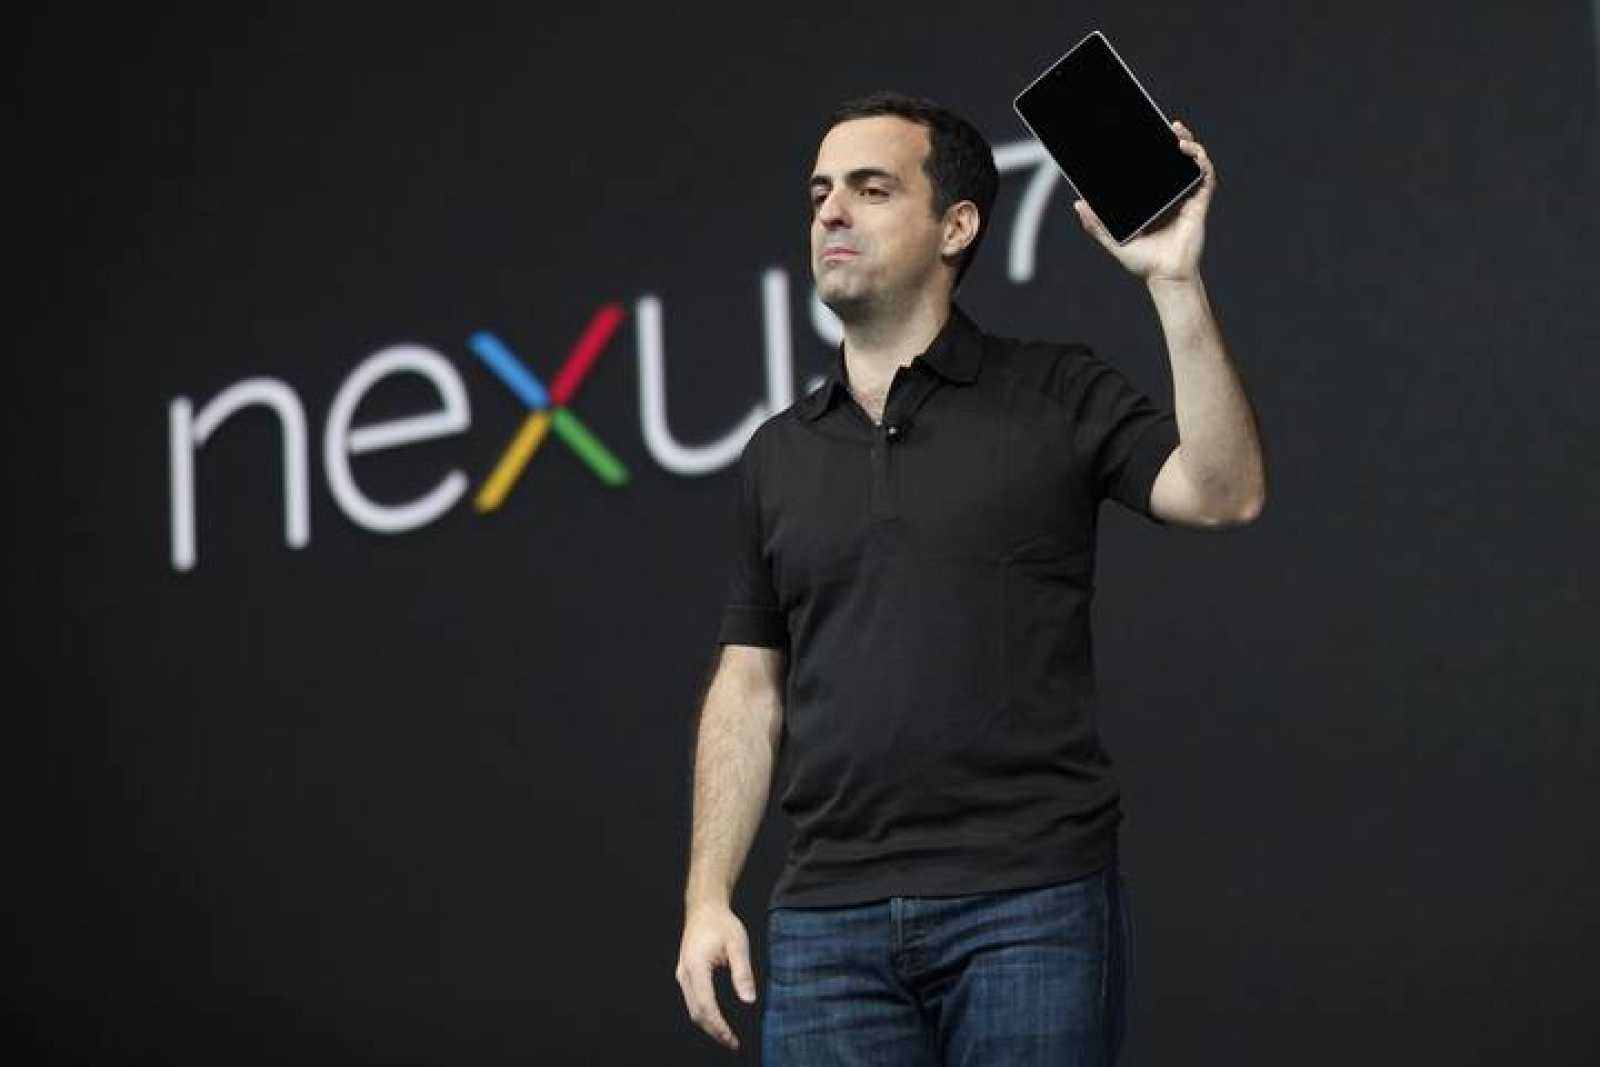 Hugo Barra, director of product management of Google, unveils Nexus 7 tablet during Google I/O 2012 Conference at Moscone Center in San Francisco